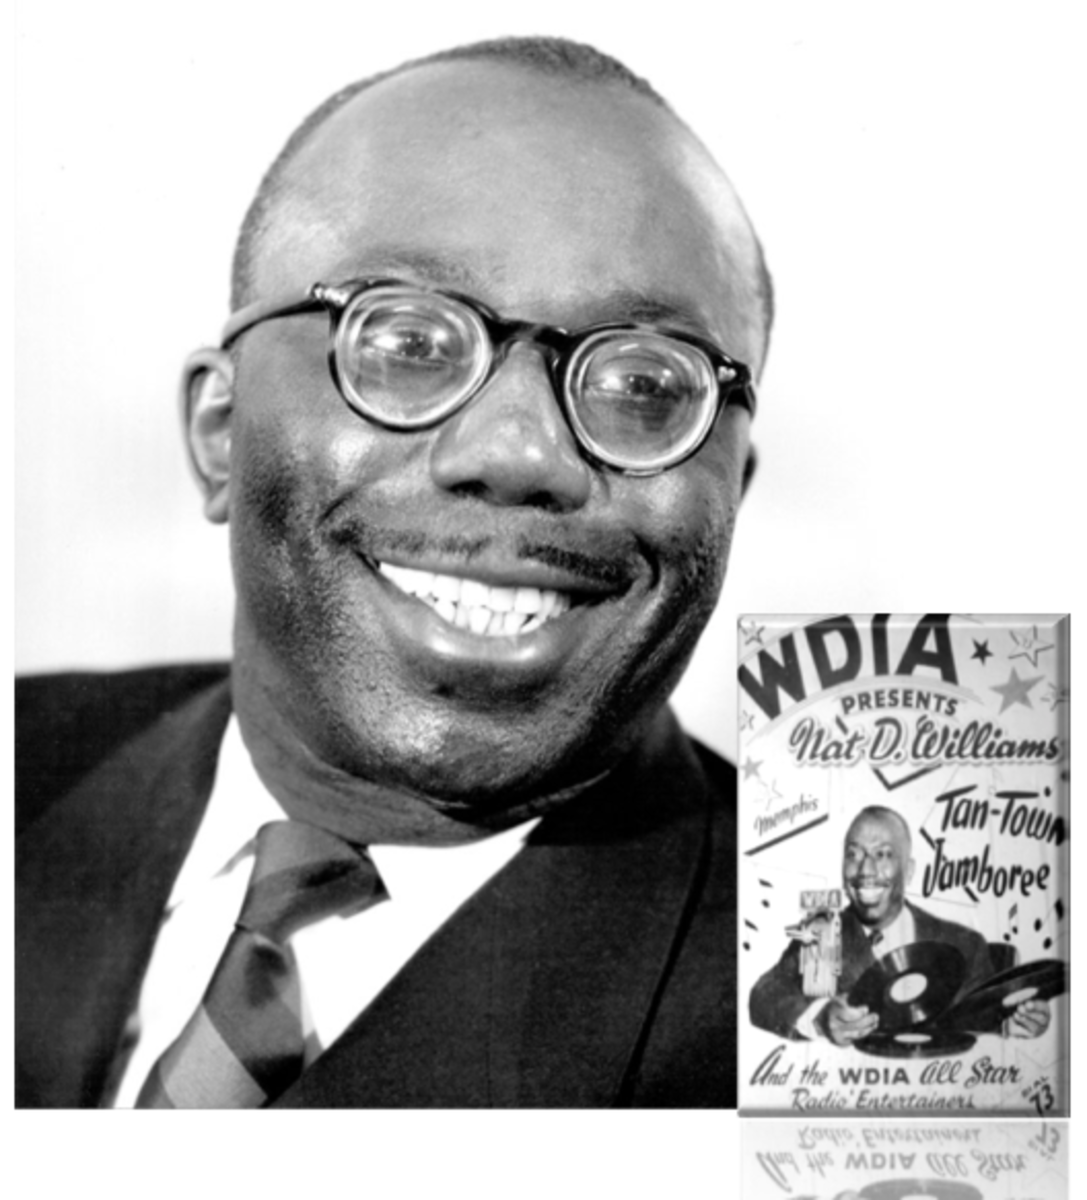 The Tan Town Jamboree program hosted by Nat D. Williams propelled WDIA to the second most popular radio station in Memphis.  Shortly after, WDIA became the city's number one station.